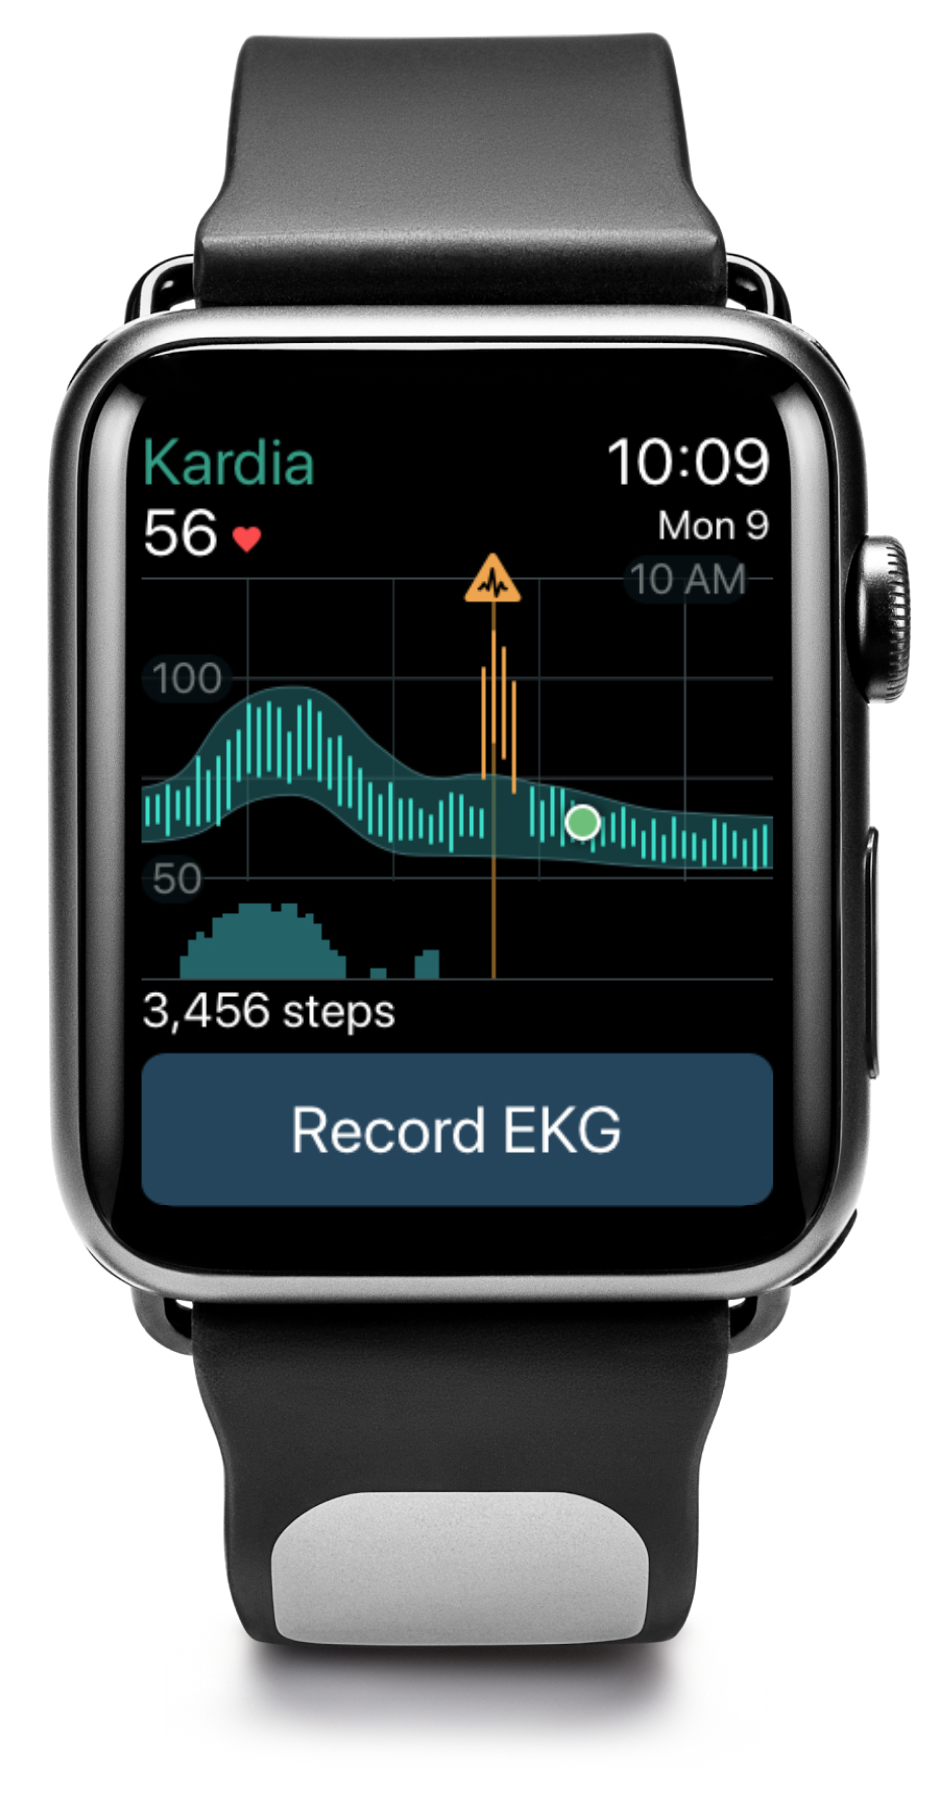 Image showing heart rate and activity on the Kardia app